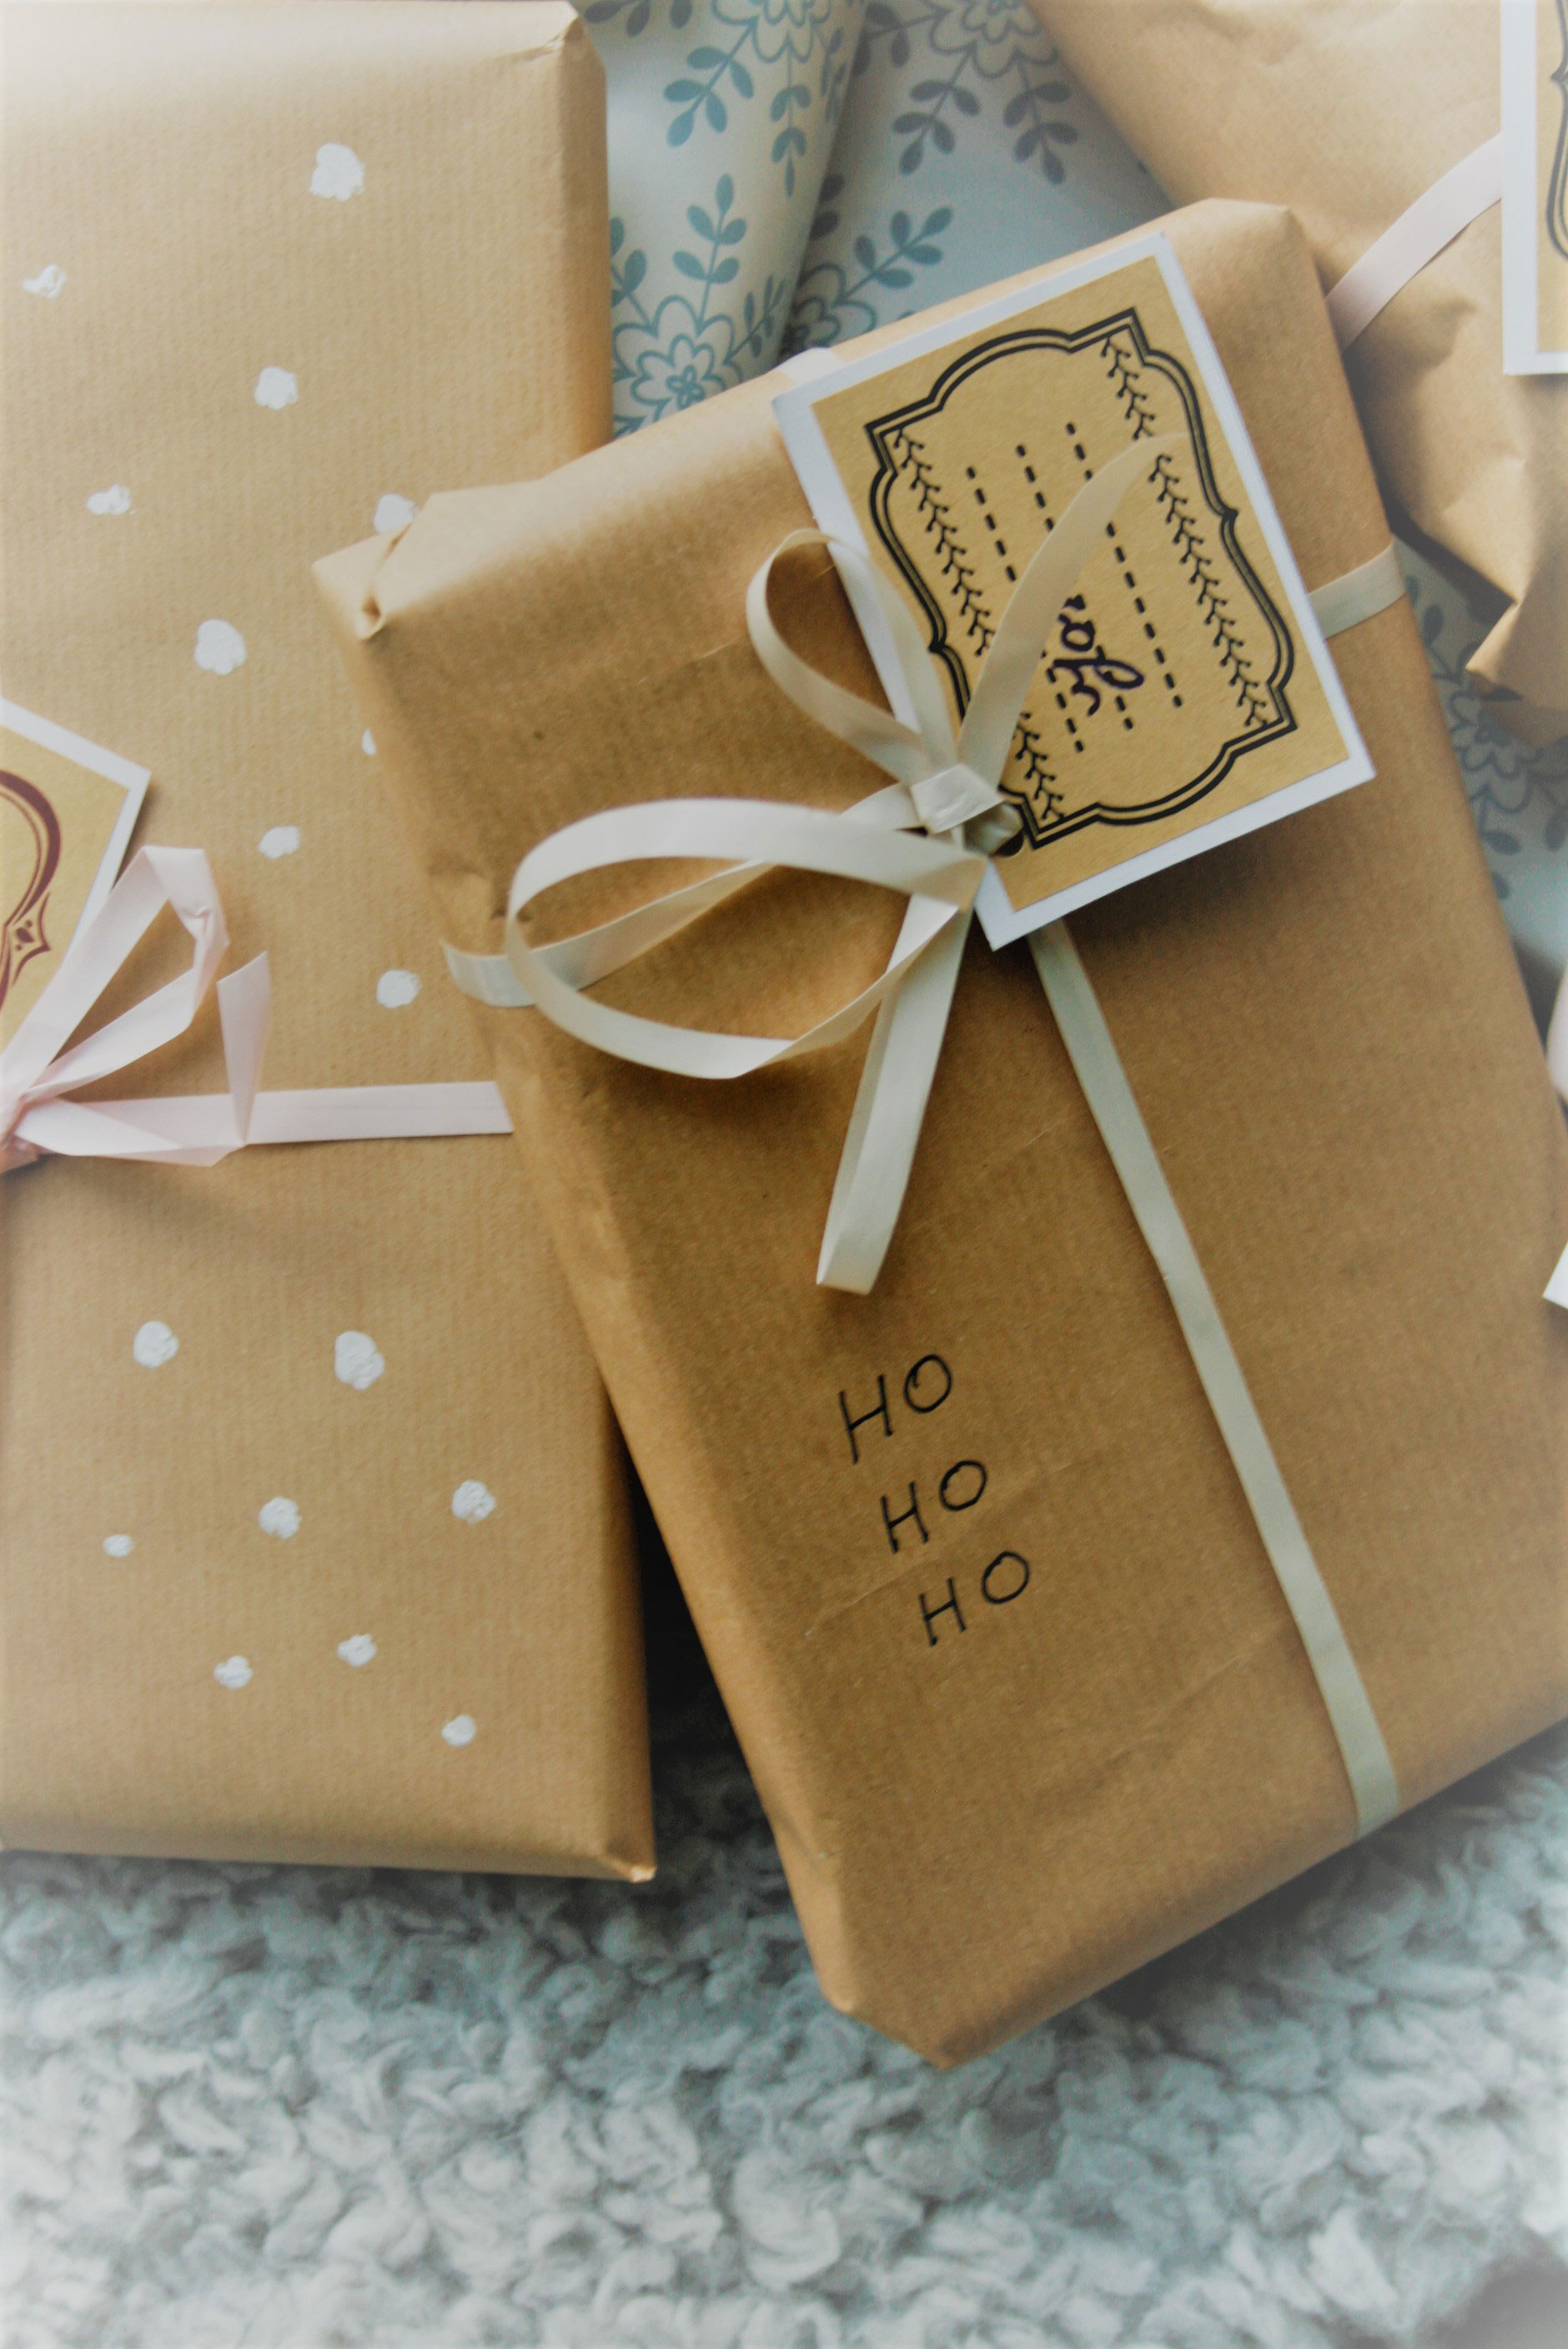 huisjethuisje-christmas-gifts-wrappings3